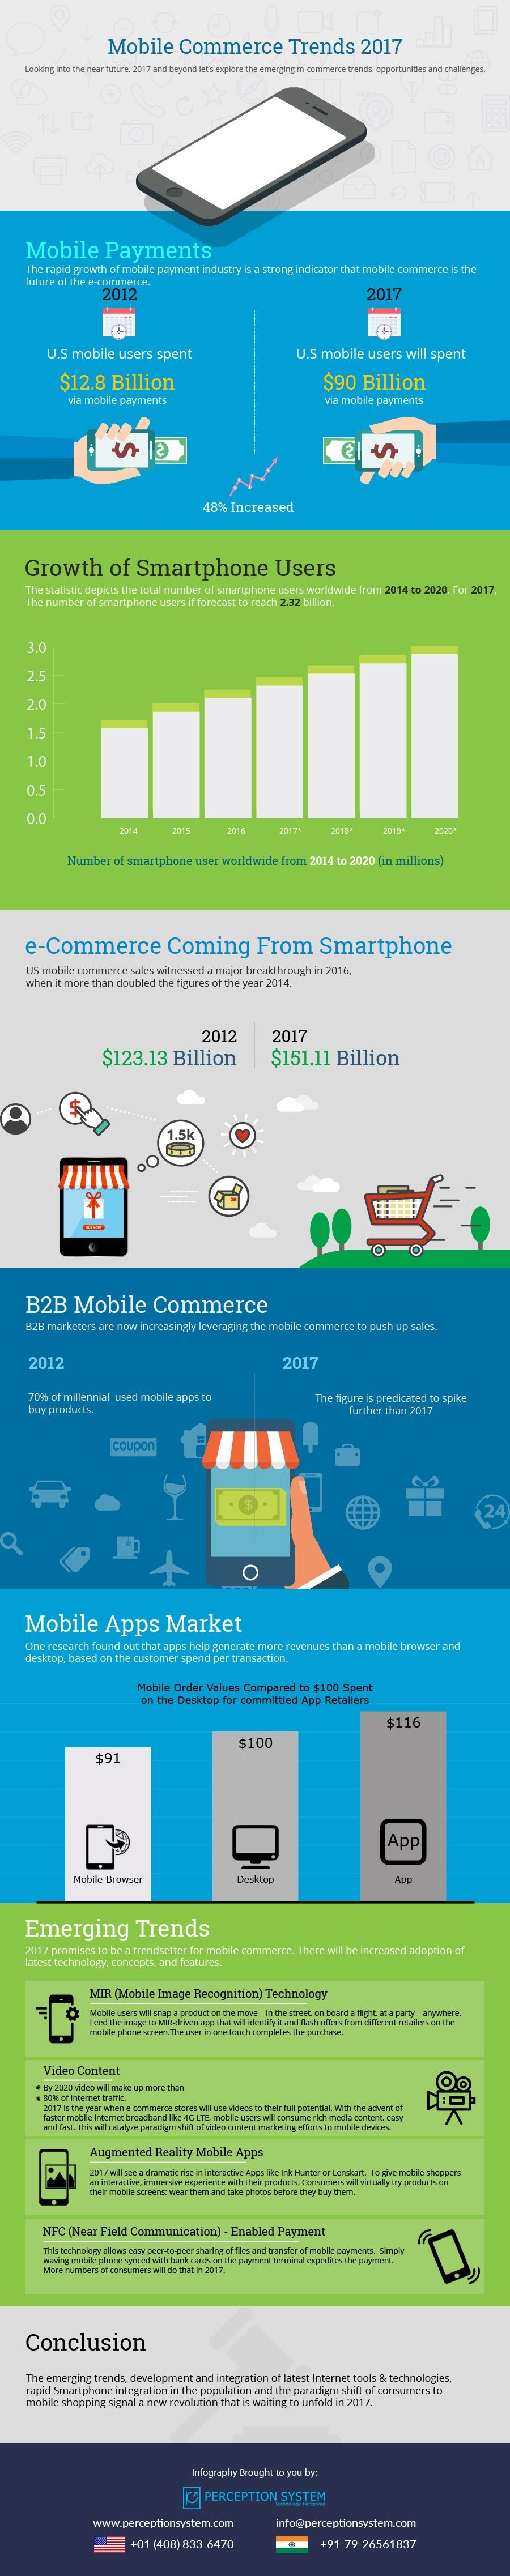 Top Mobile Commerce Trends For 2017